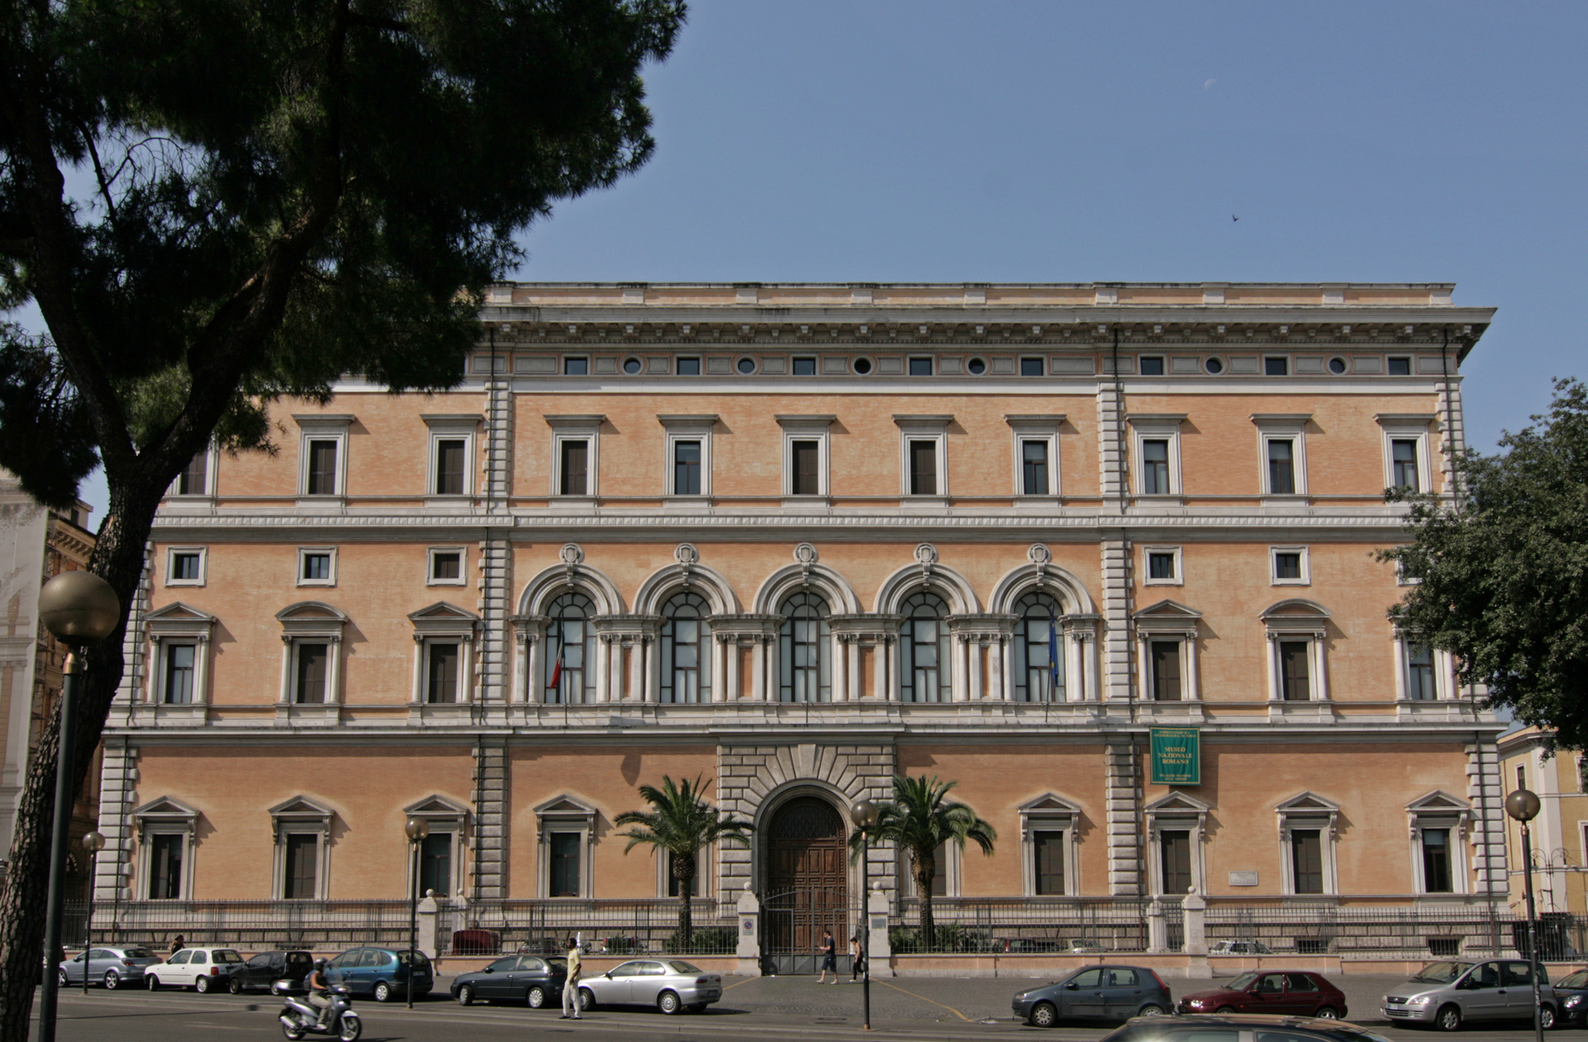 Palazzo Massimo alle Terme, Rome: All year